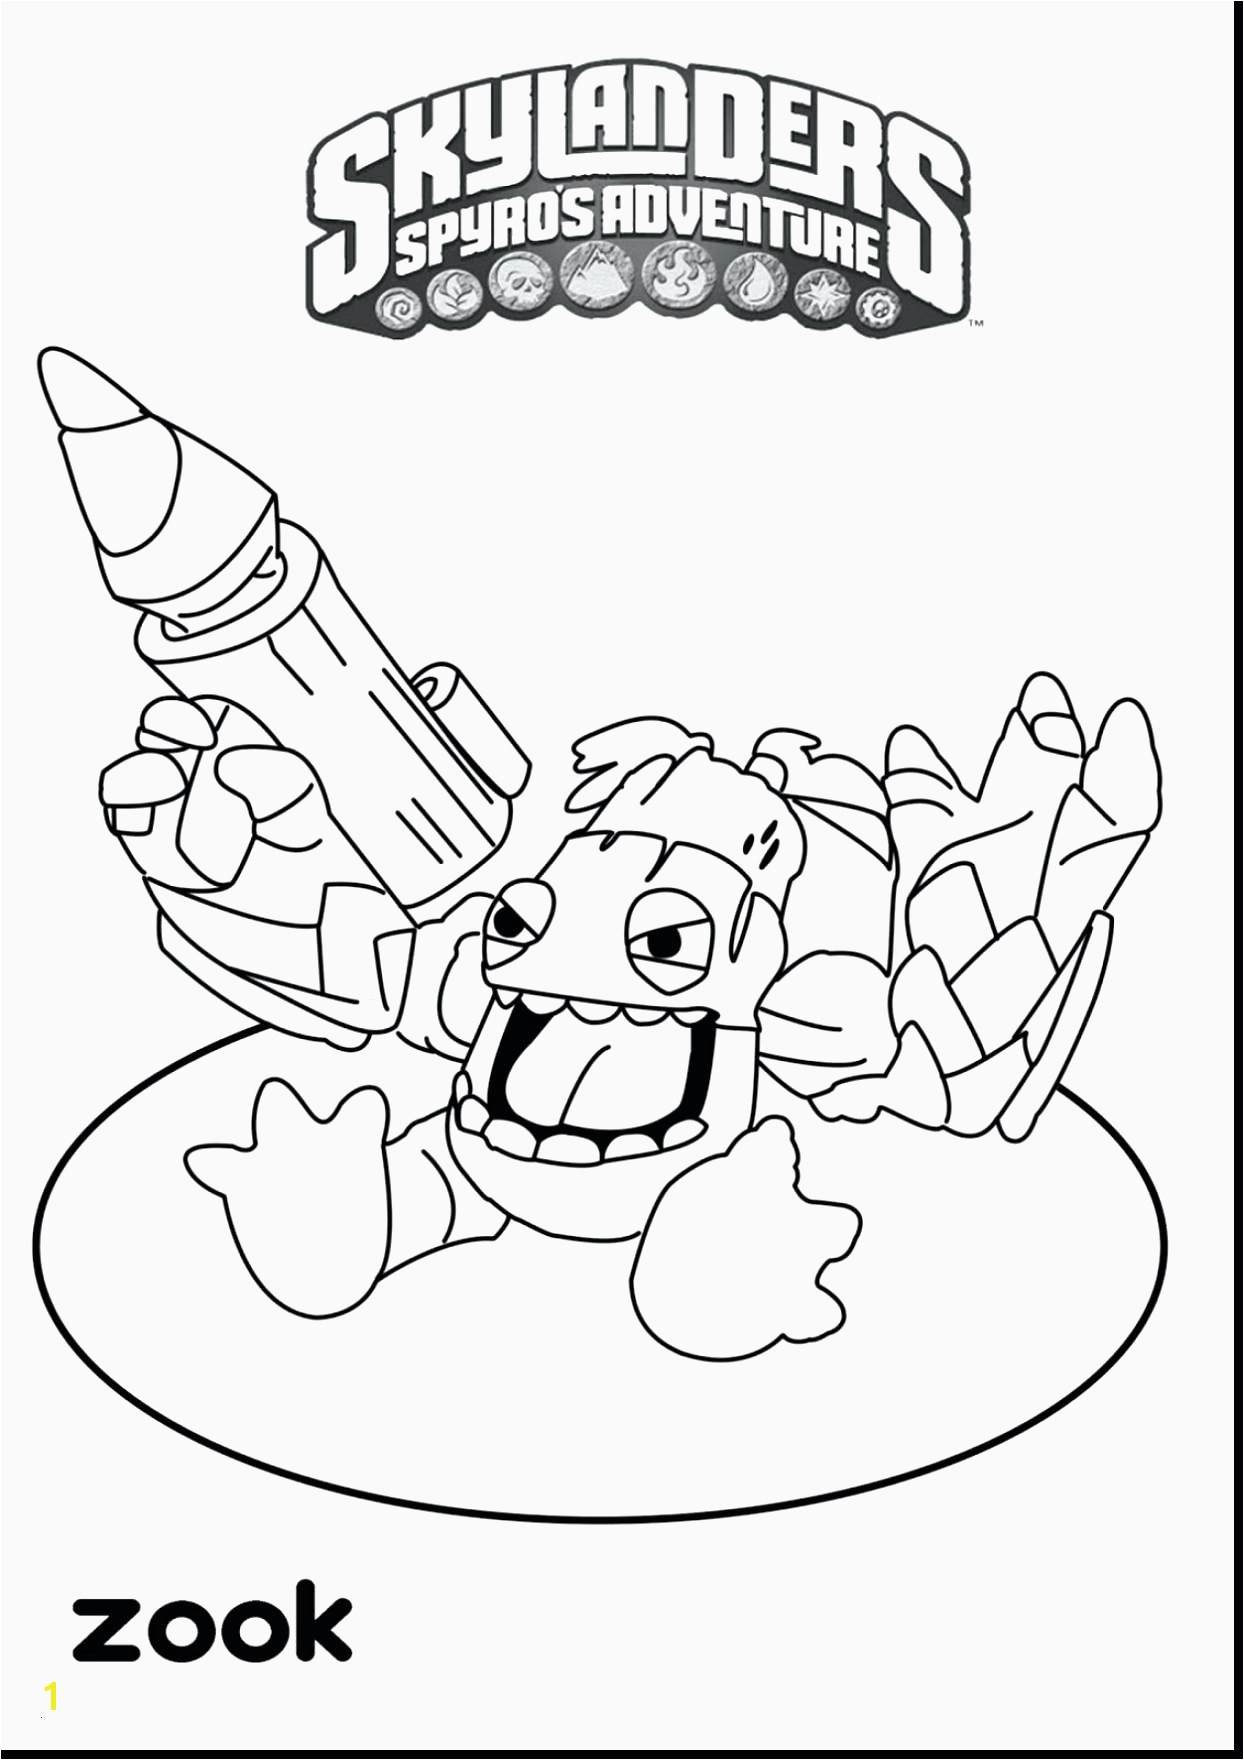 0d Phone Coloring Pages African American Coloring Pages Brilliant Cool Coloring Page Unique